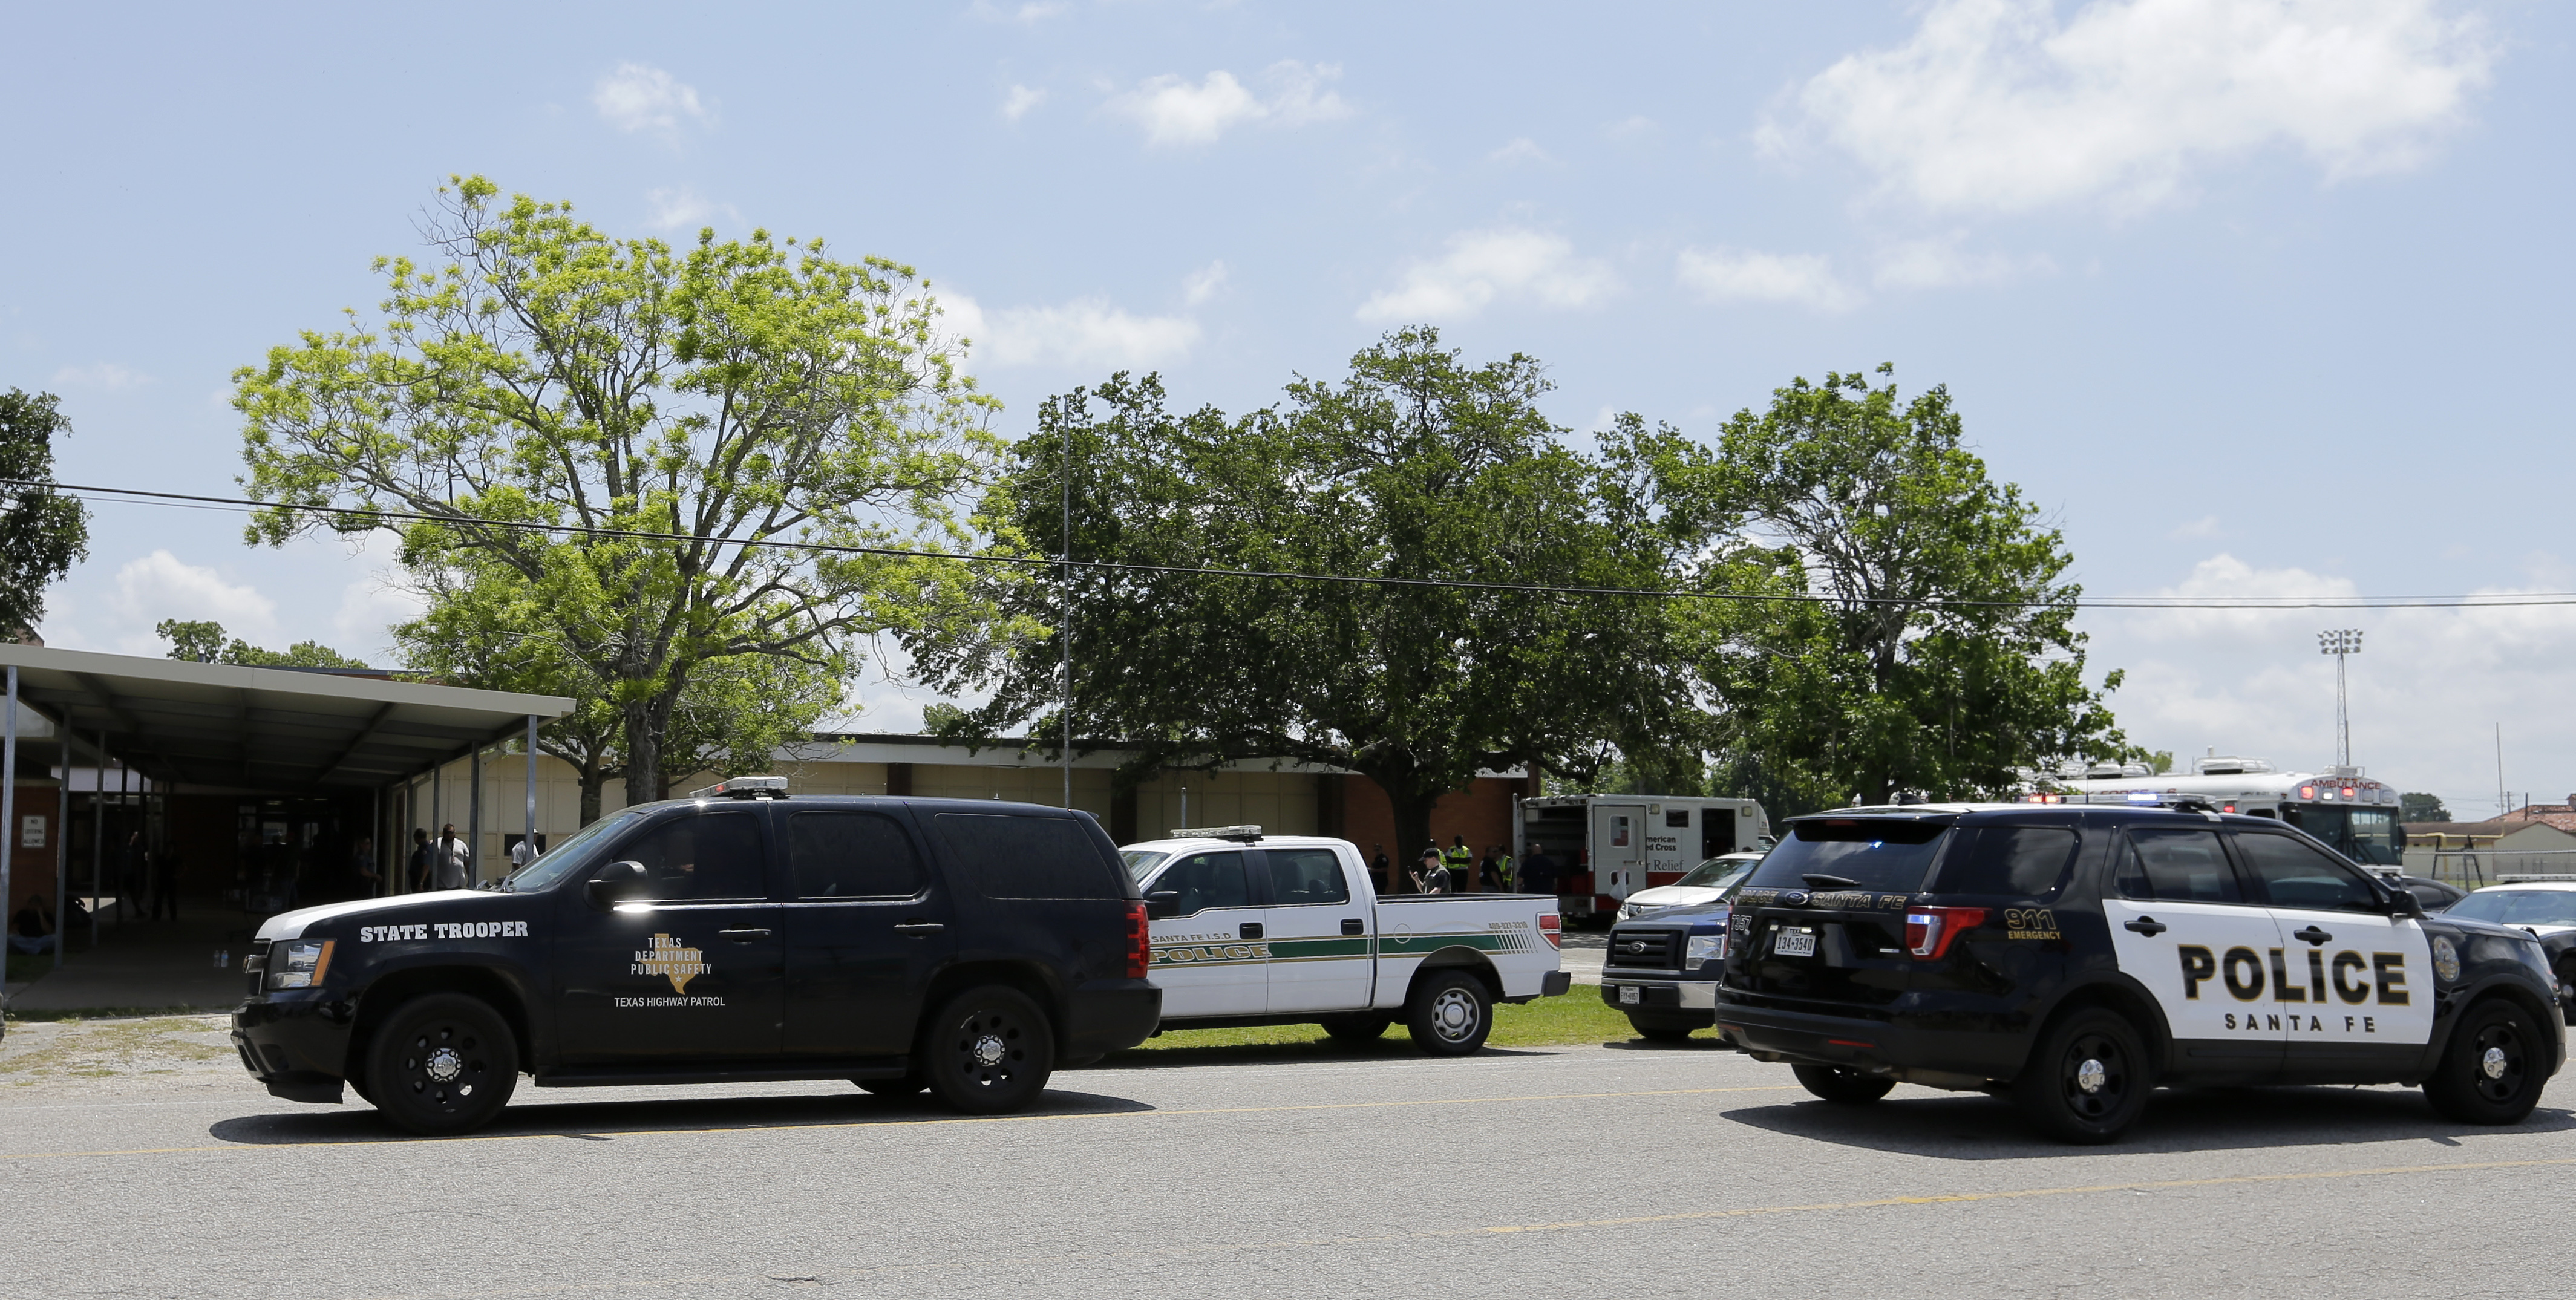 <div class='meta'><div class='origin-logo' data-origin='AP'></div><span class='caption-text' data-credit='AP'>Law enforcement vehicles are parked outside the Alamo Gym where students and parents wait to reunite, May 18, 2018 (AP Photo/David J. Phillip)</span></div>